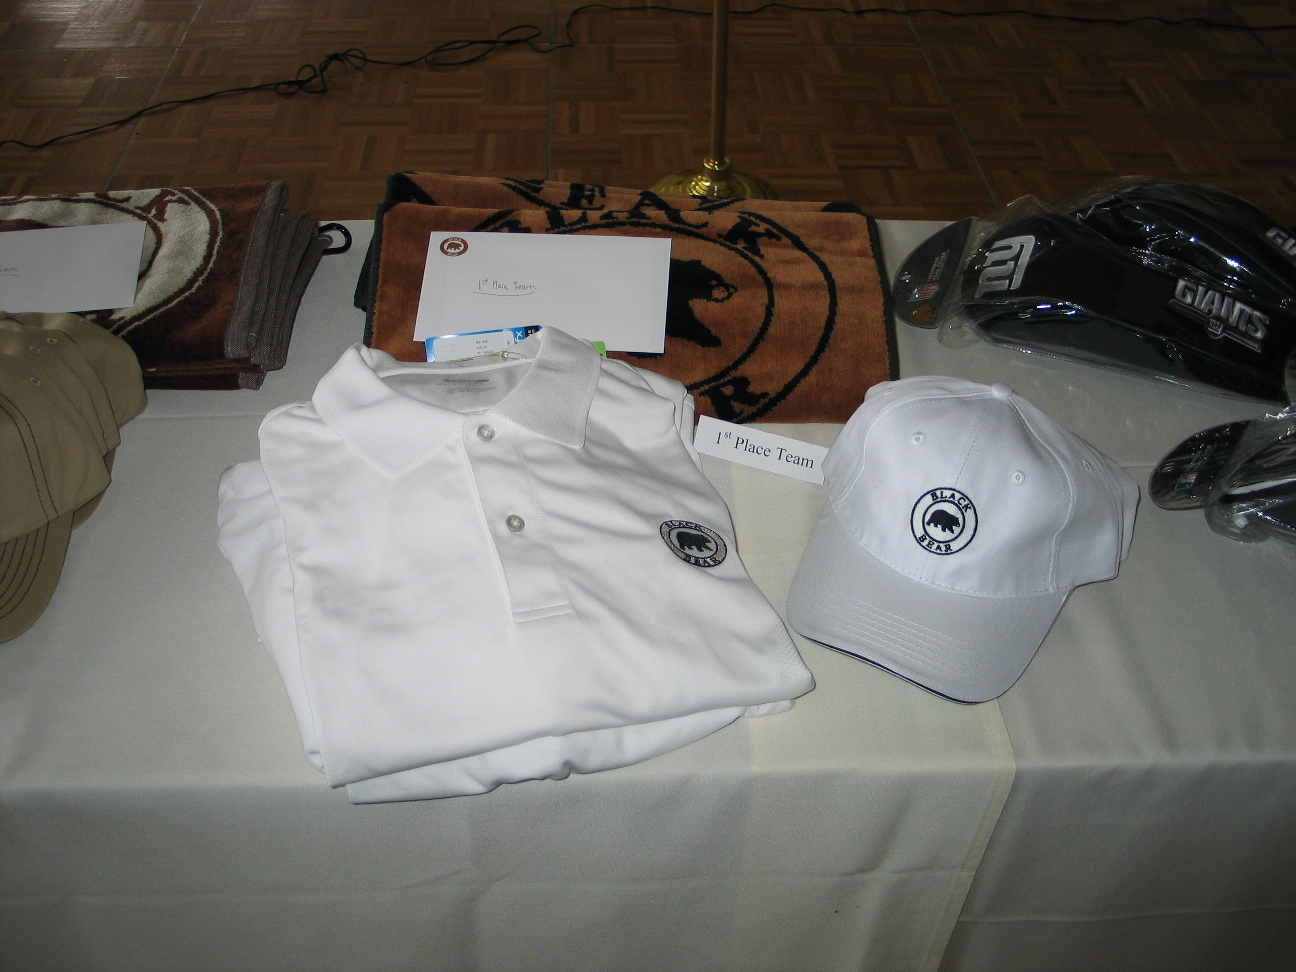 2009_District_Golf_outing___65_.jpg